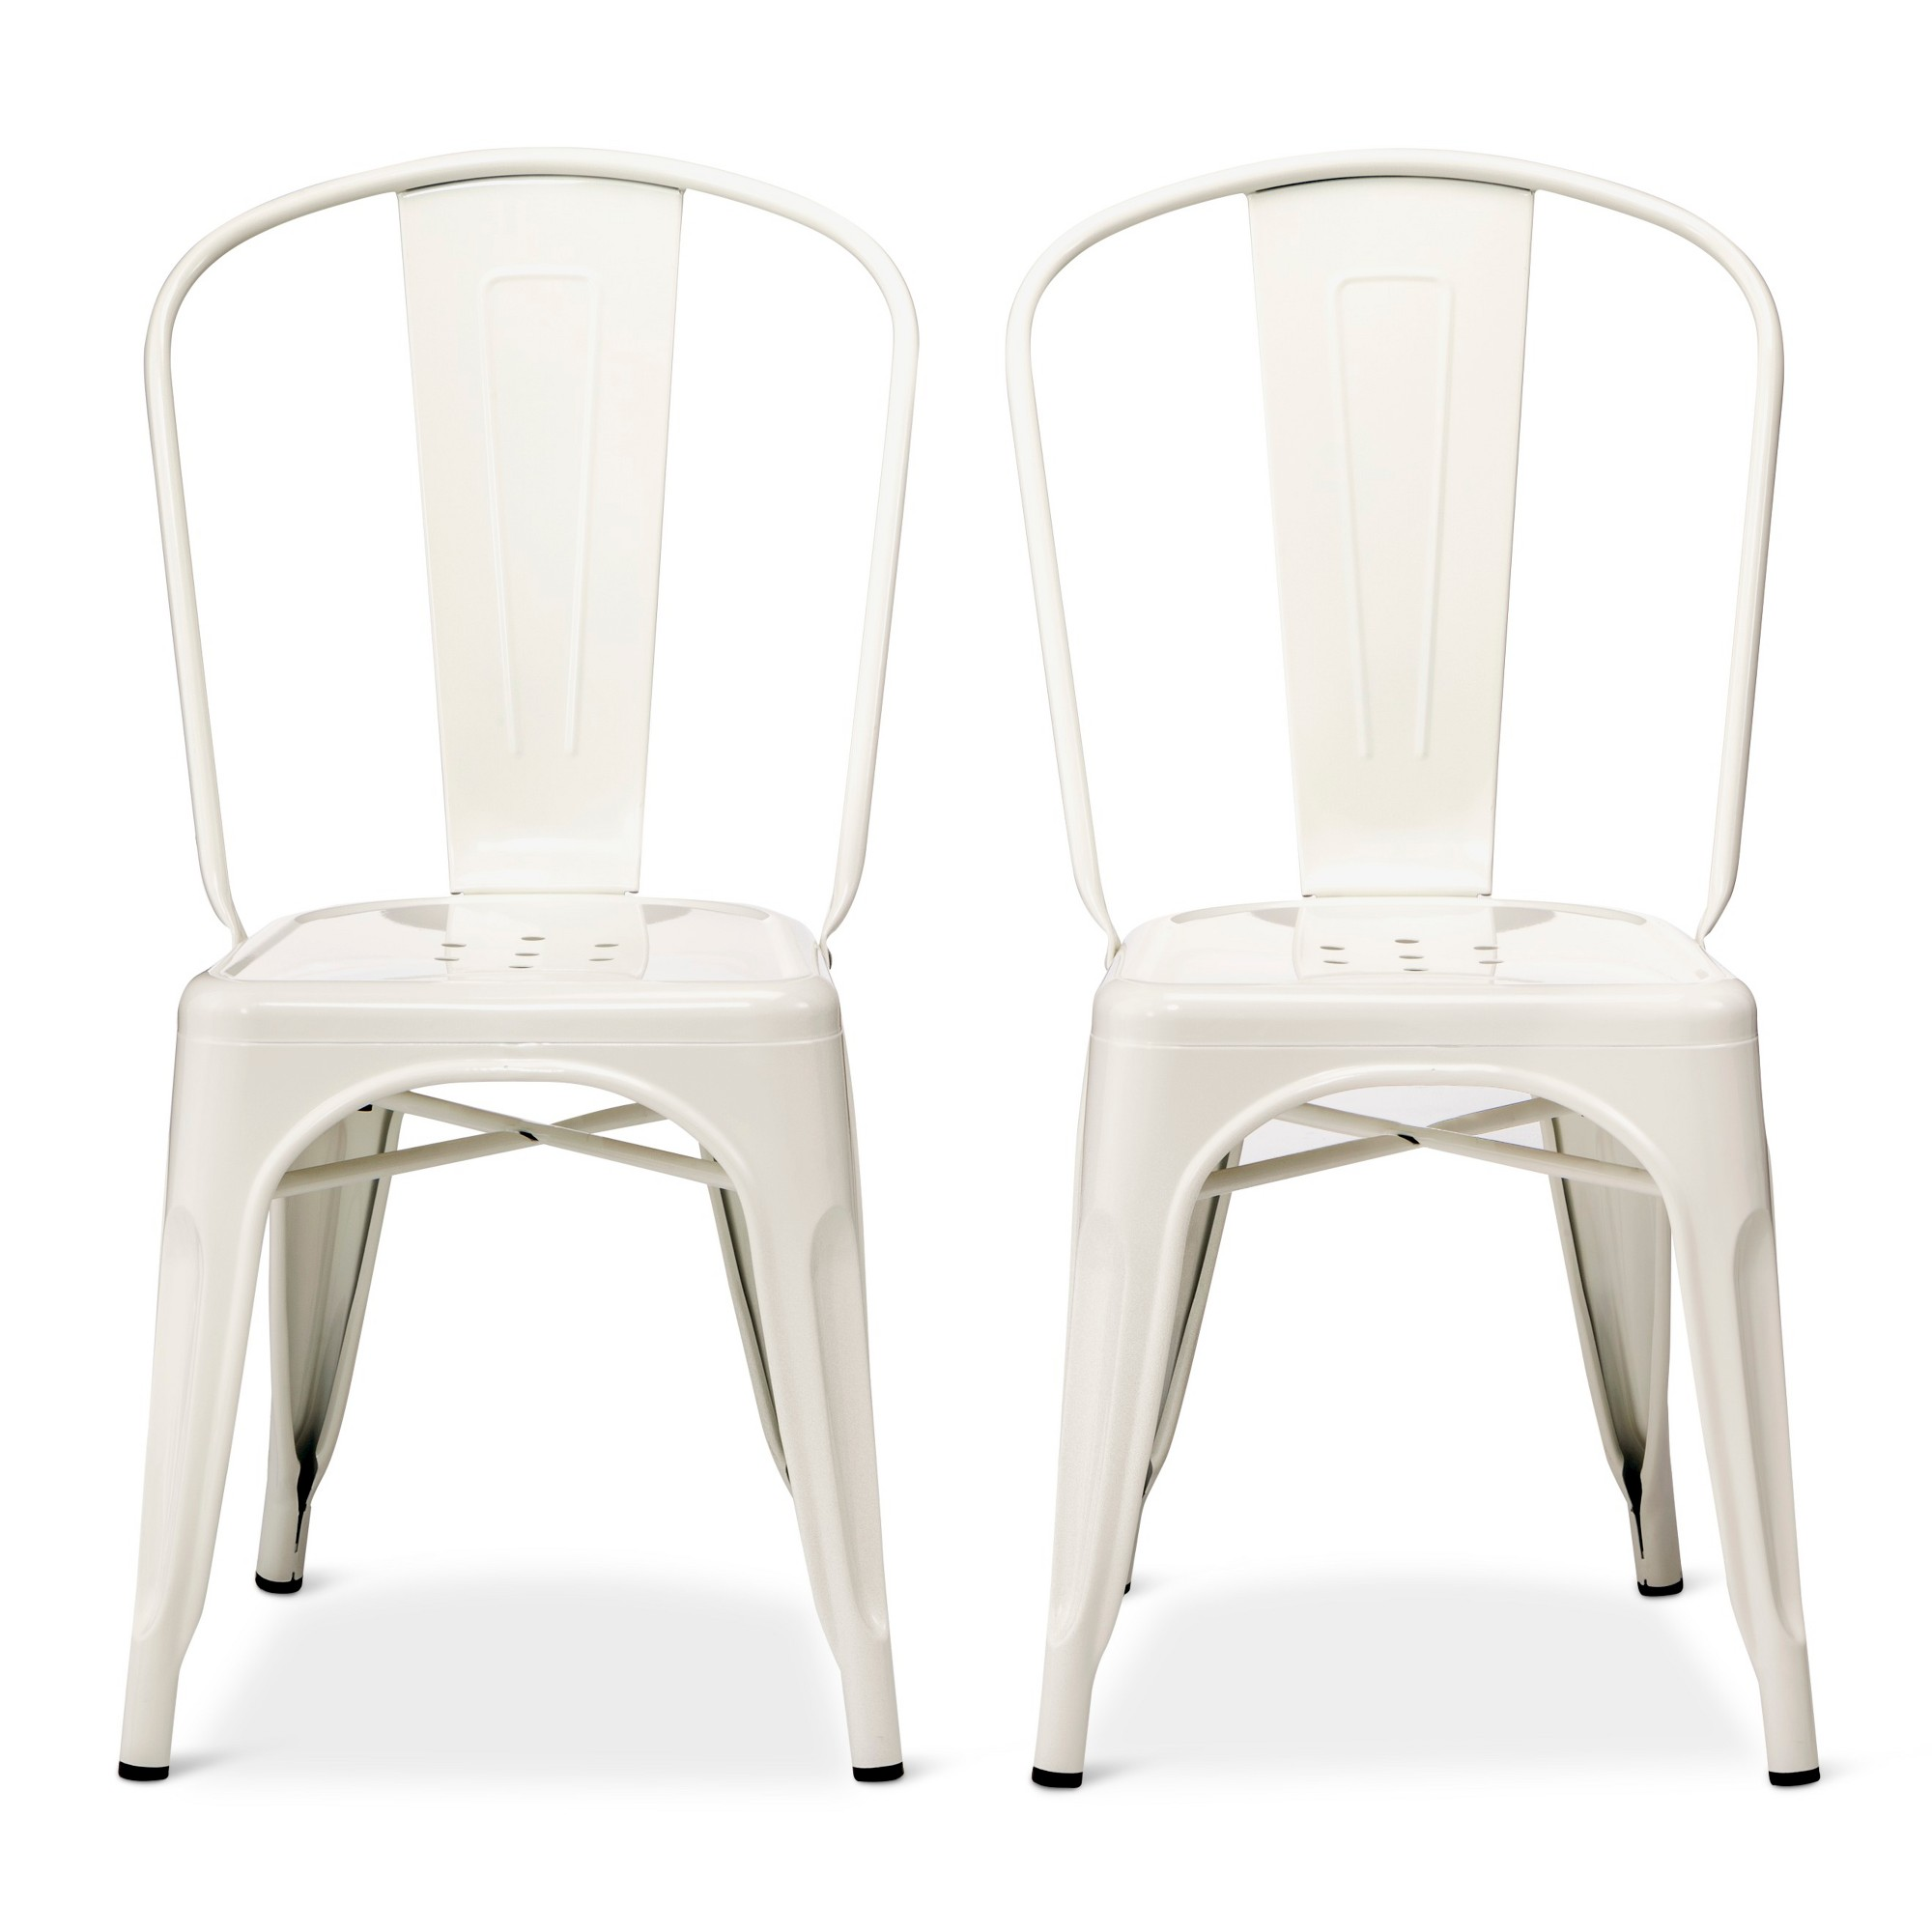 carlisle high back metal dining chair white products in 2018 rh pinterest com